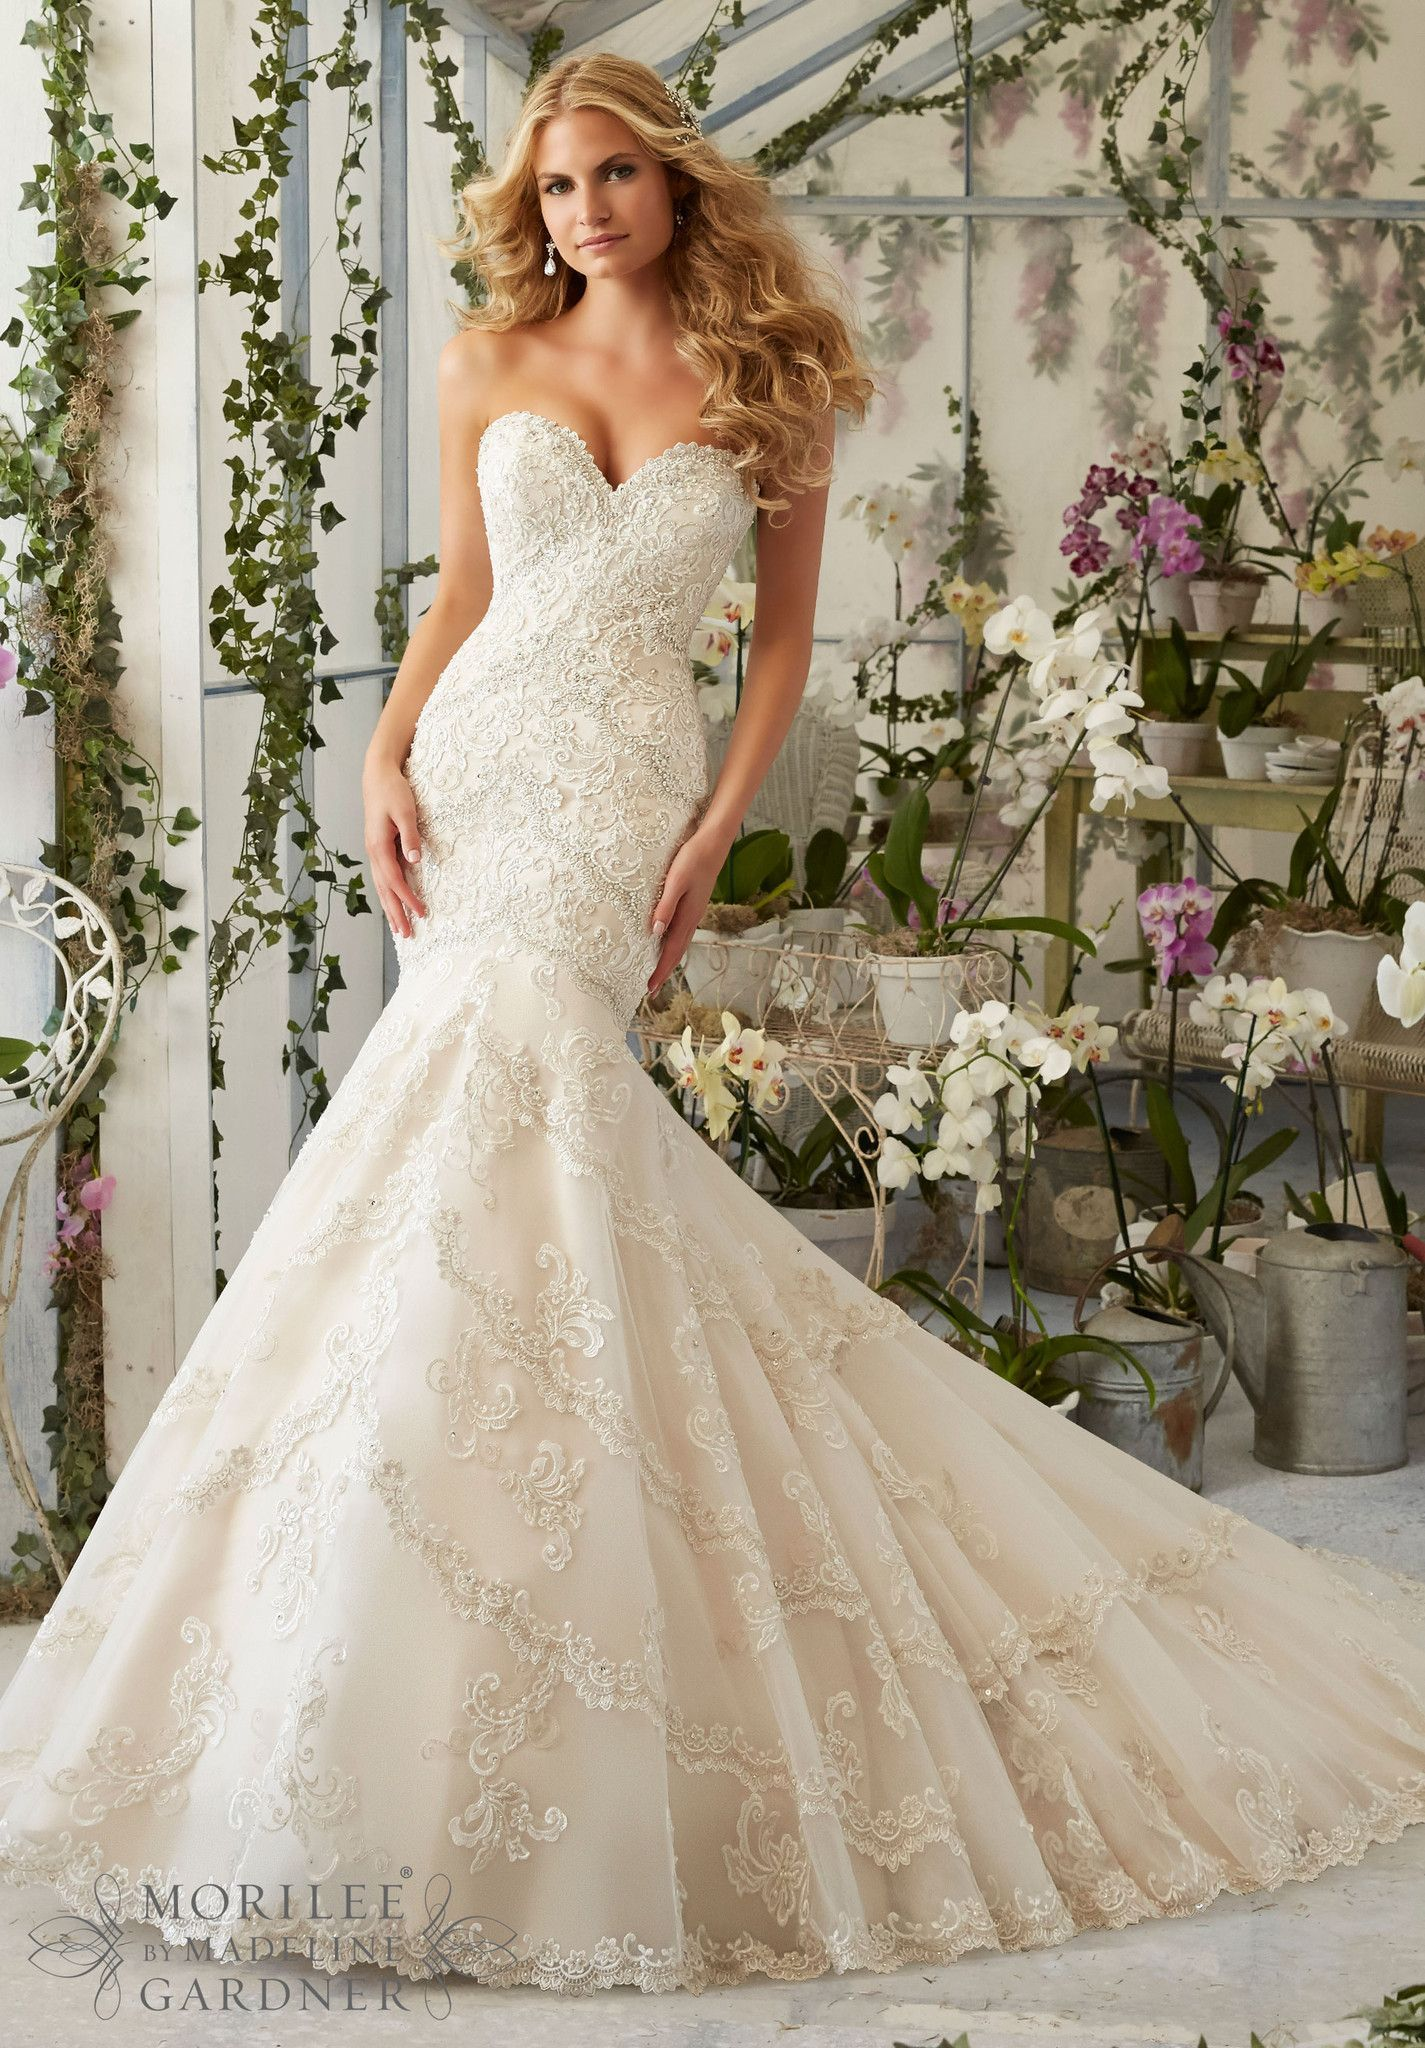 Mori lee all dressed up bridal gown mori lee bridal